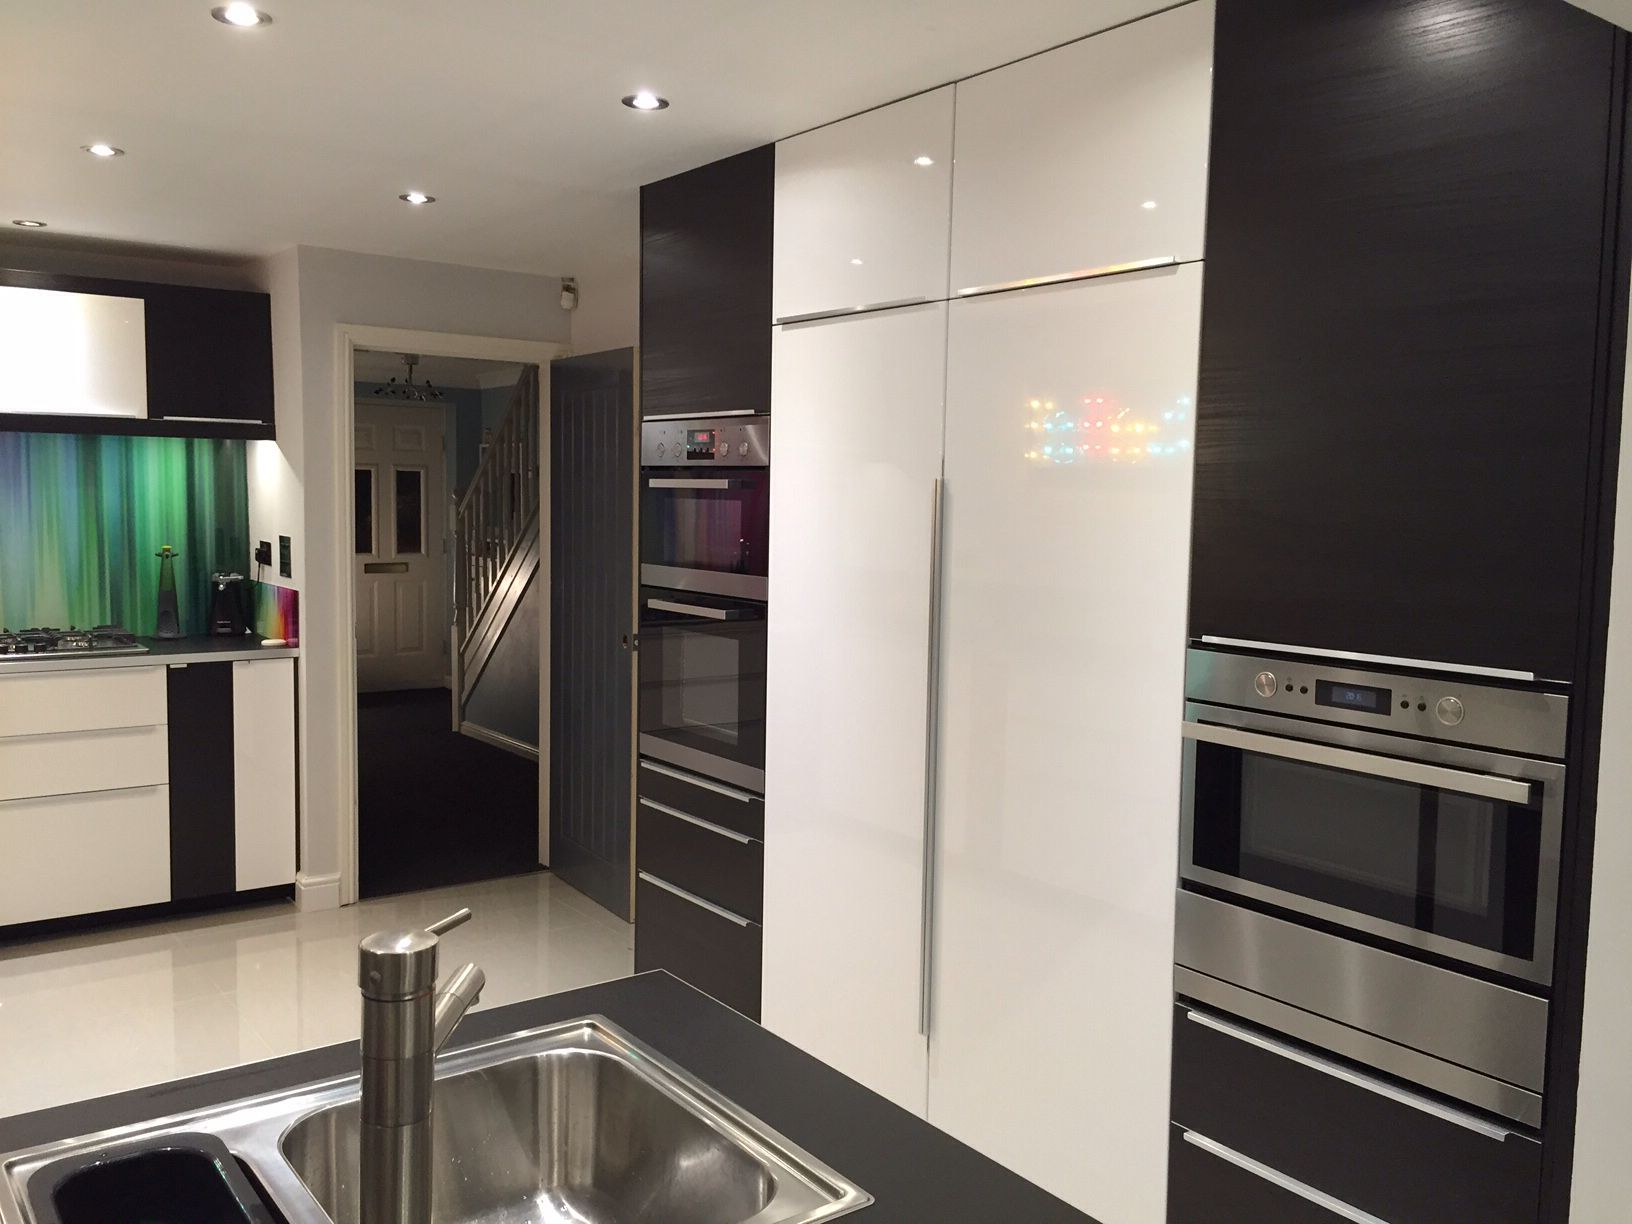 Ikea Ringhult High Gloss White And Tingsryd Black Kitchen With Appliance Wall Incorporating Ful Kitchen Decor Modern Kitchen Remodel Design Double Oven Kitchen